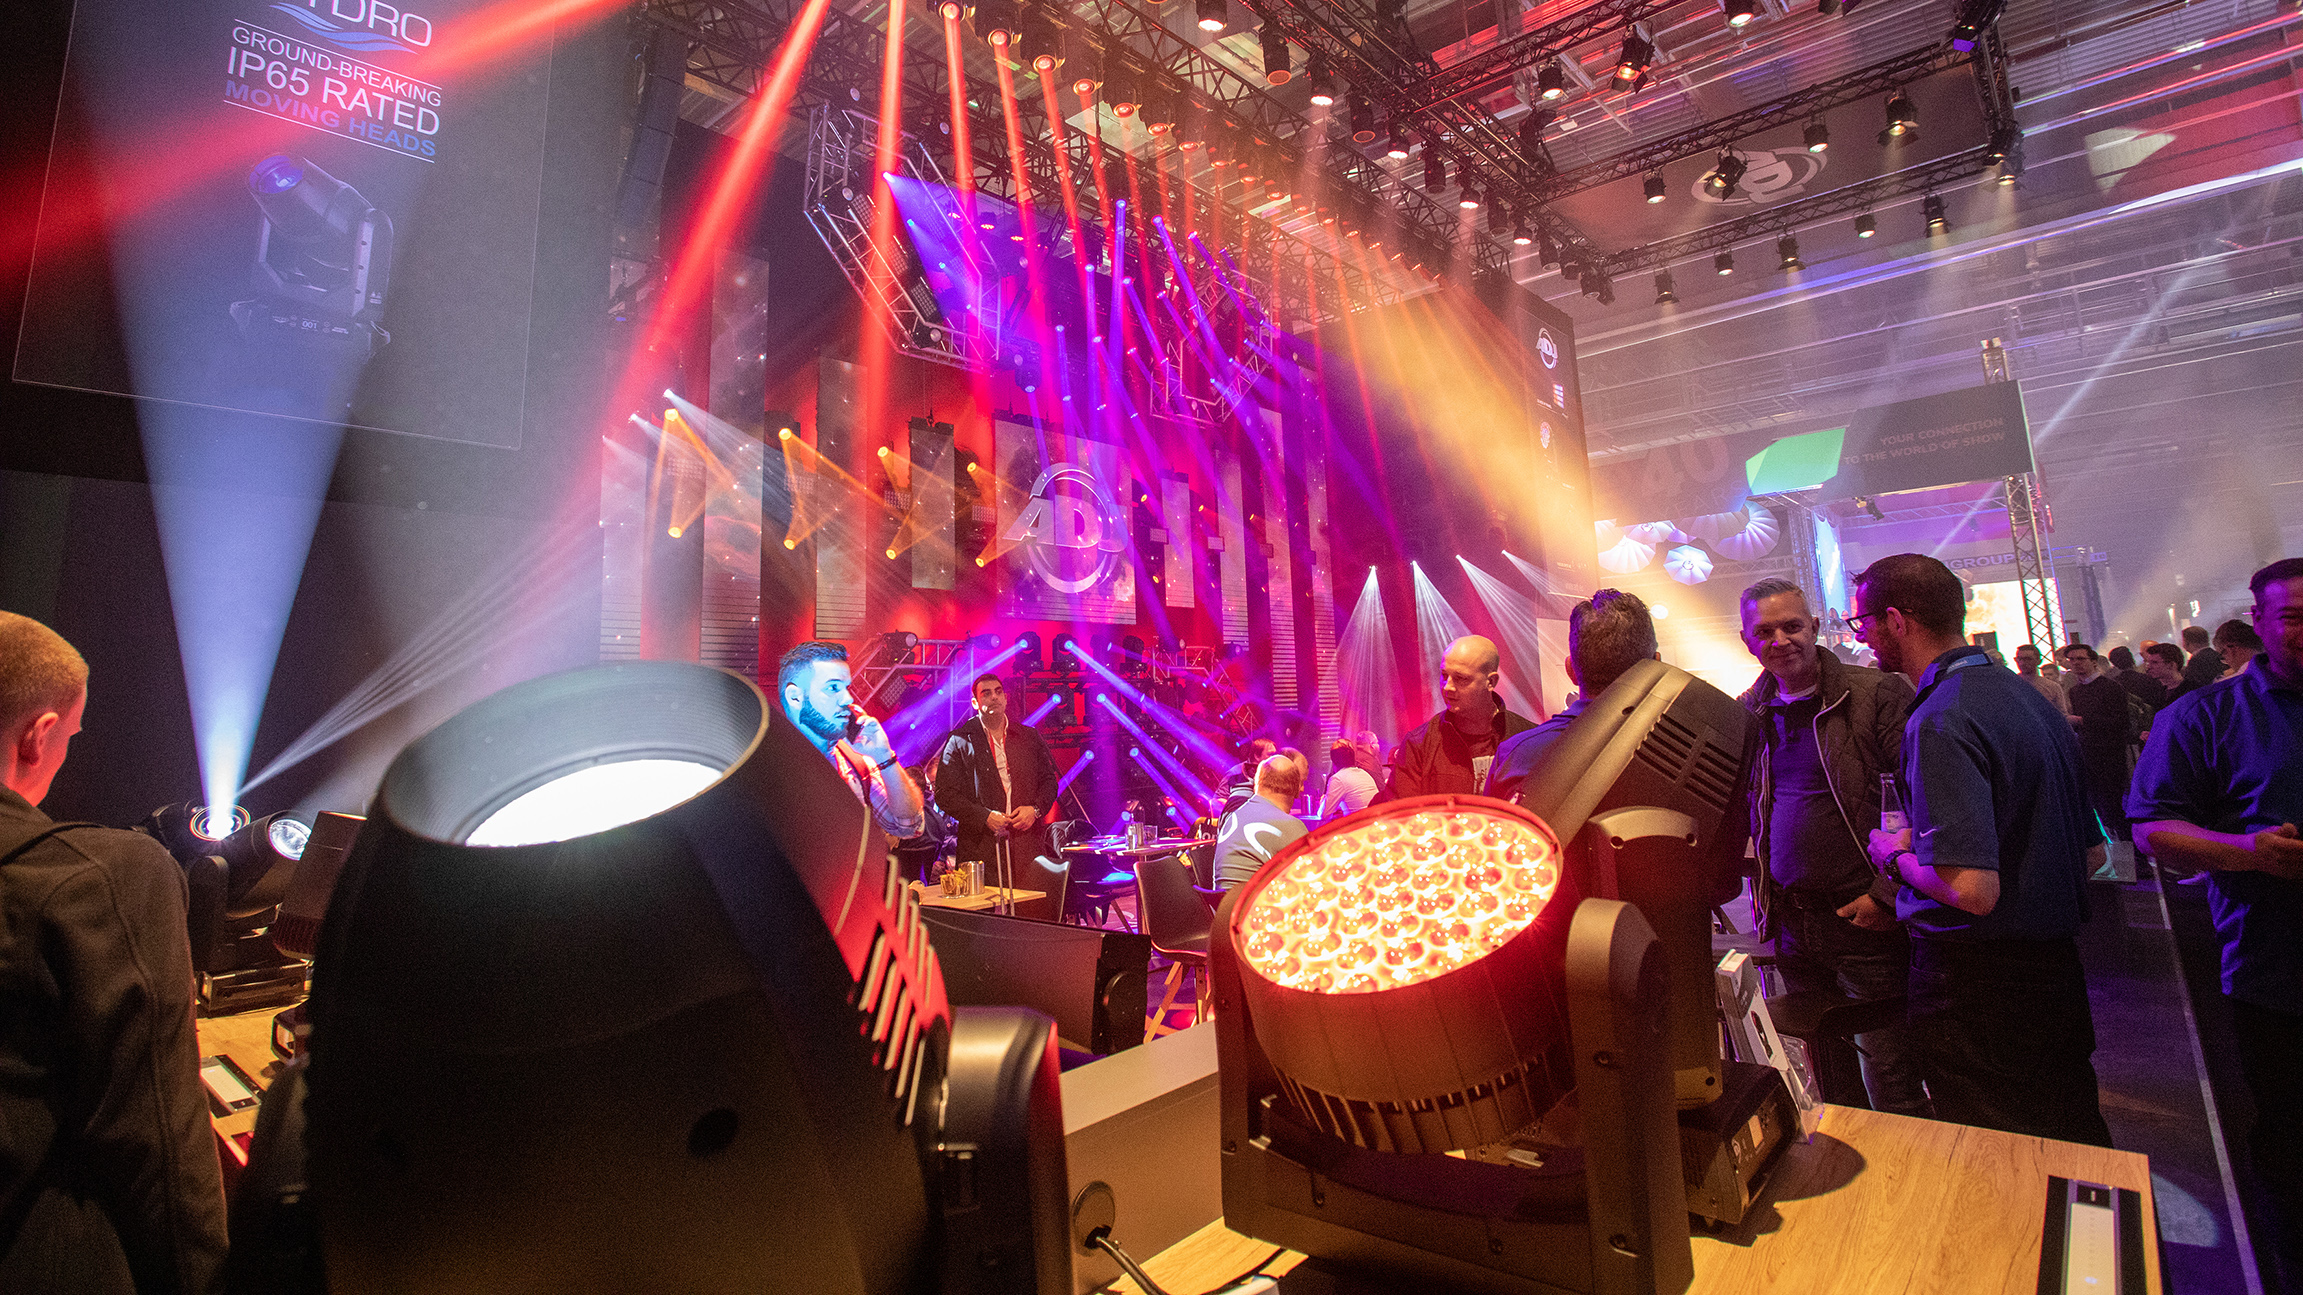 Show lighting at Prolight + Sound